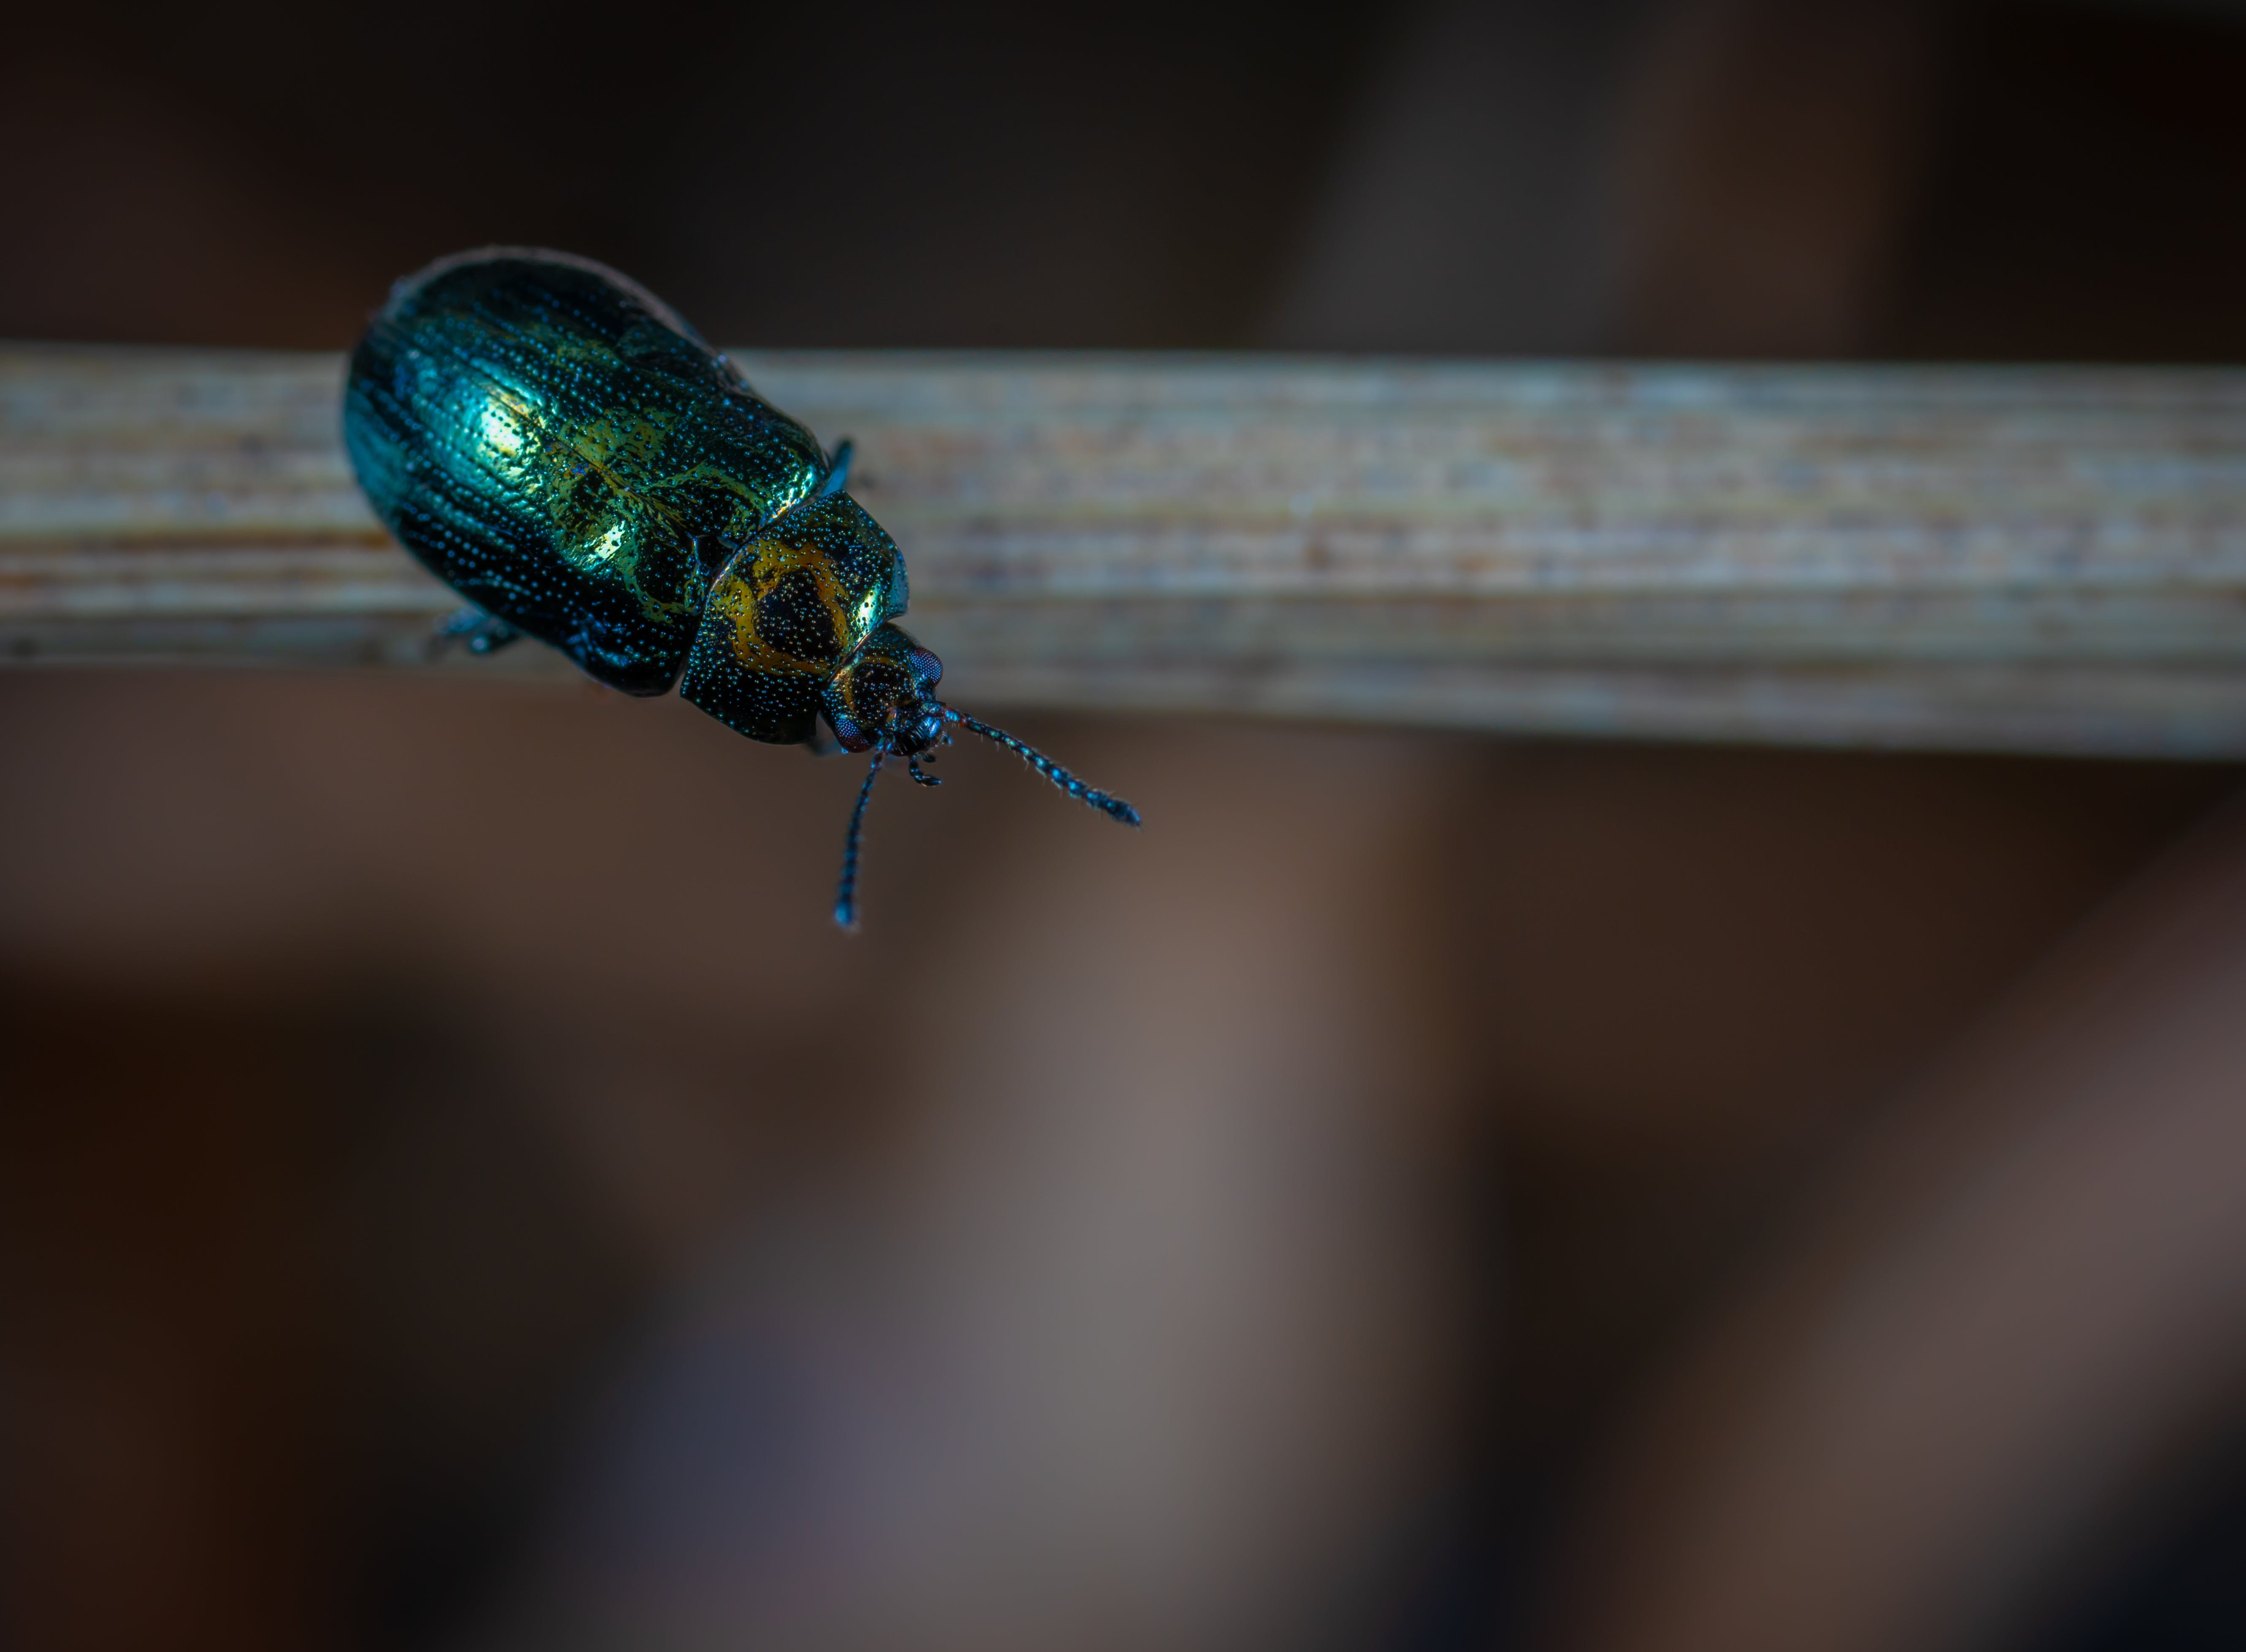 Close Up Photo of Green Beetle